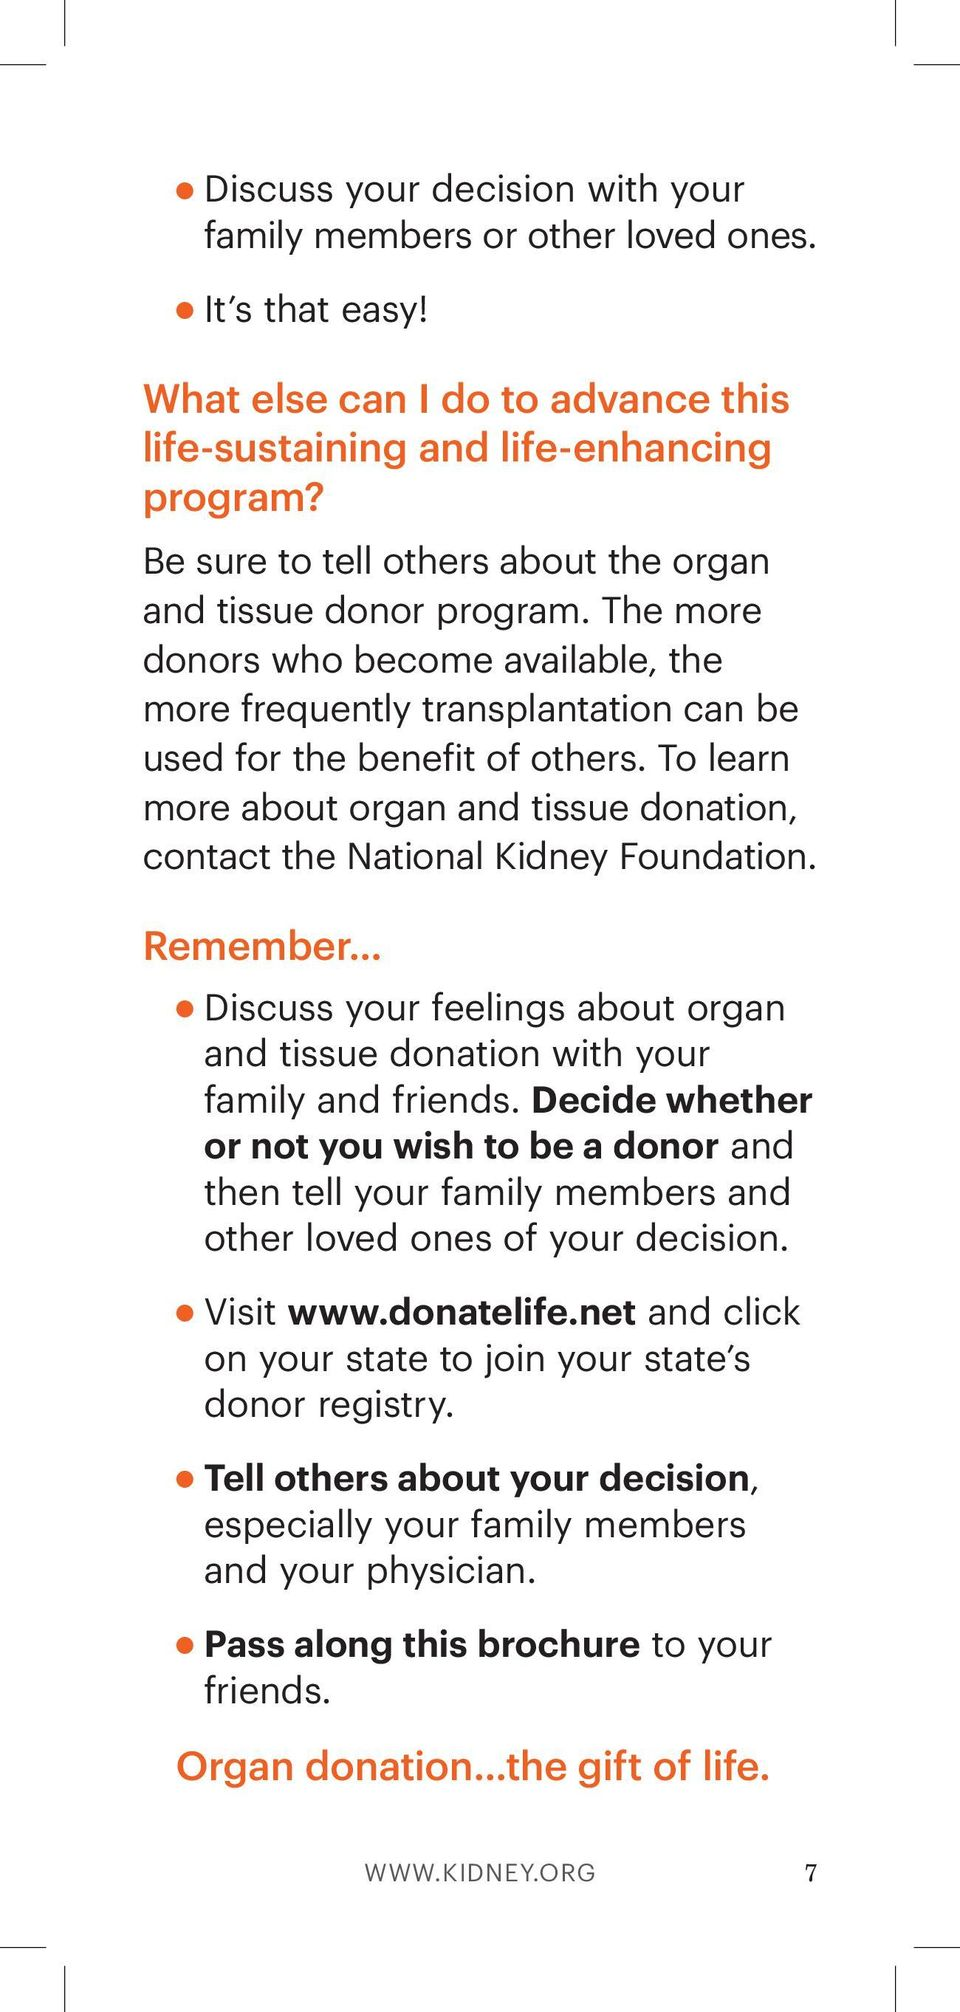 To learn more about organ and tissue donation, contact the National Kidney Foundation. Remember Discuss your feelings about organ and tissue donation with your family and friends.